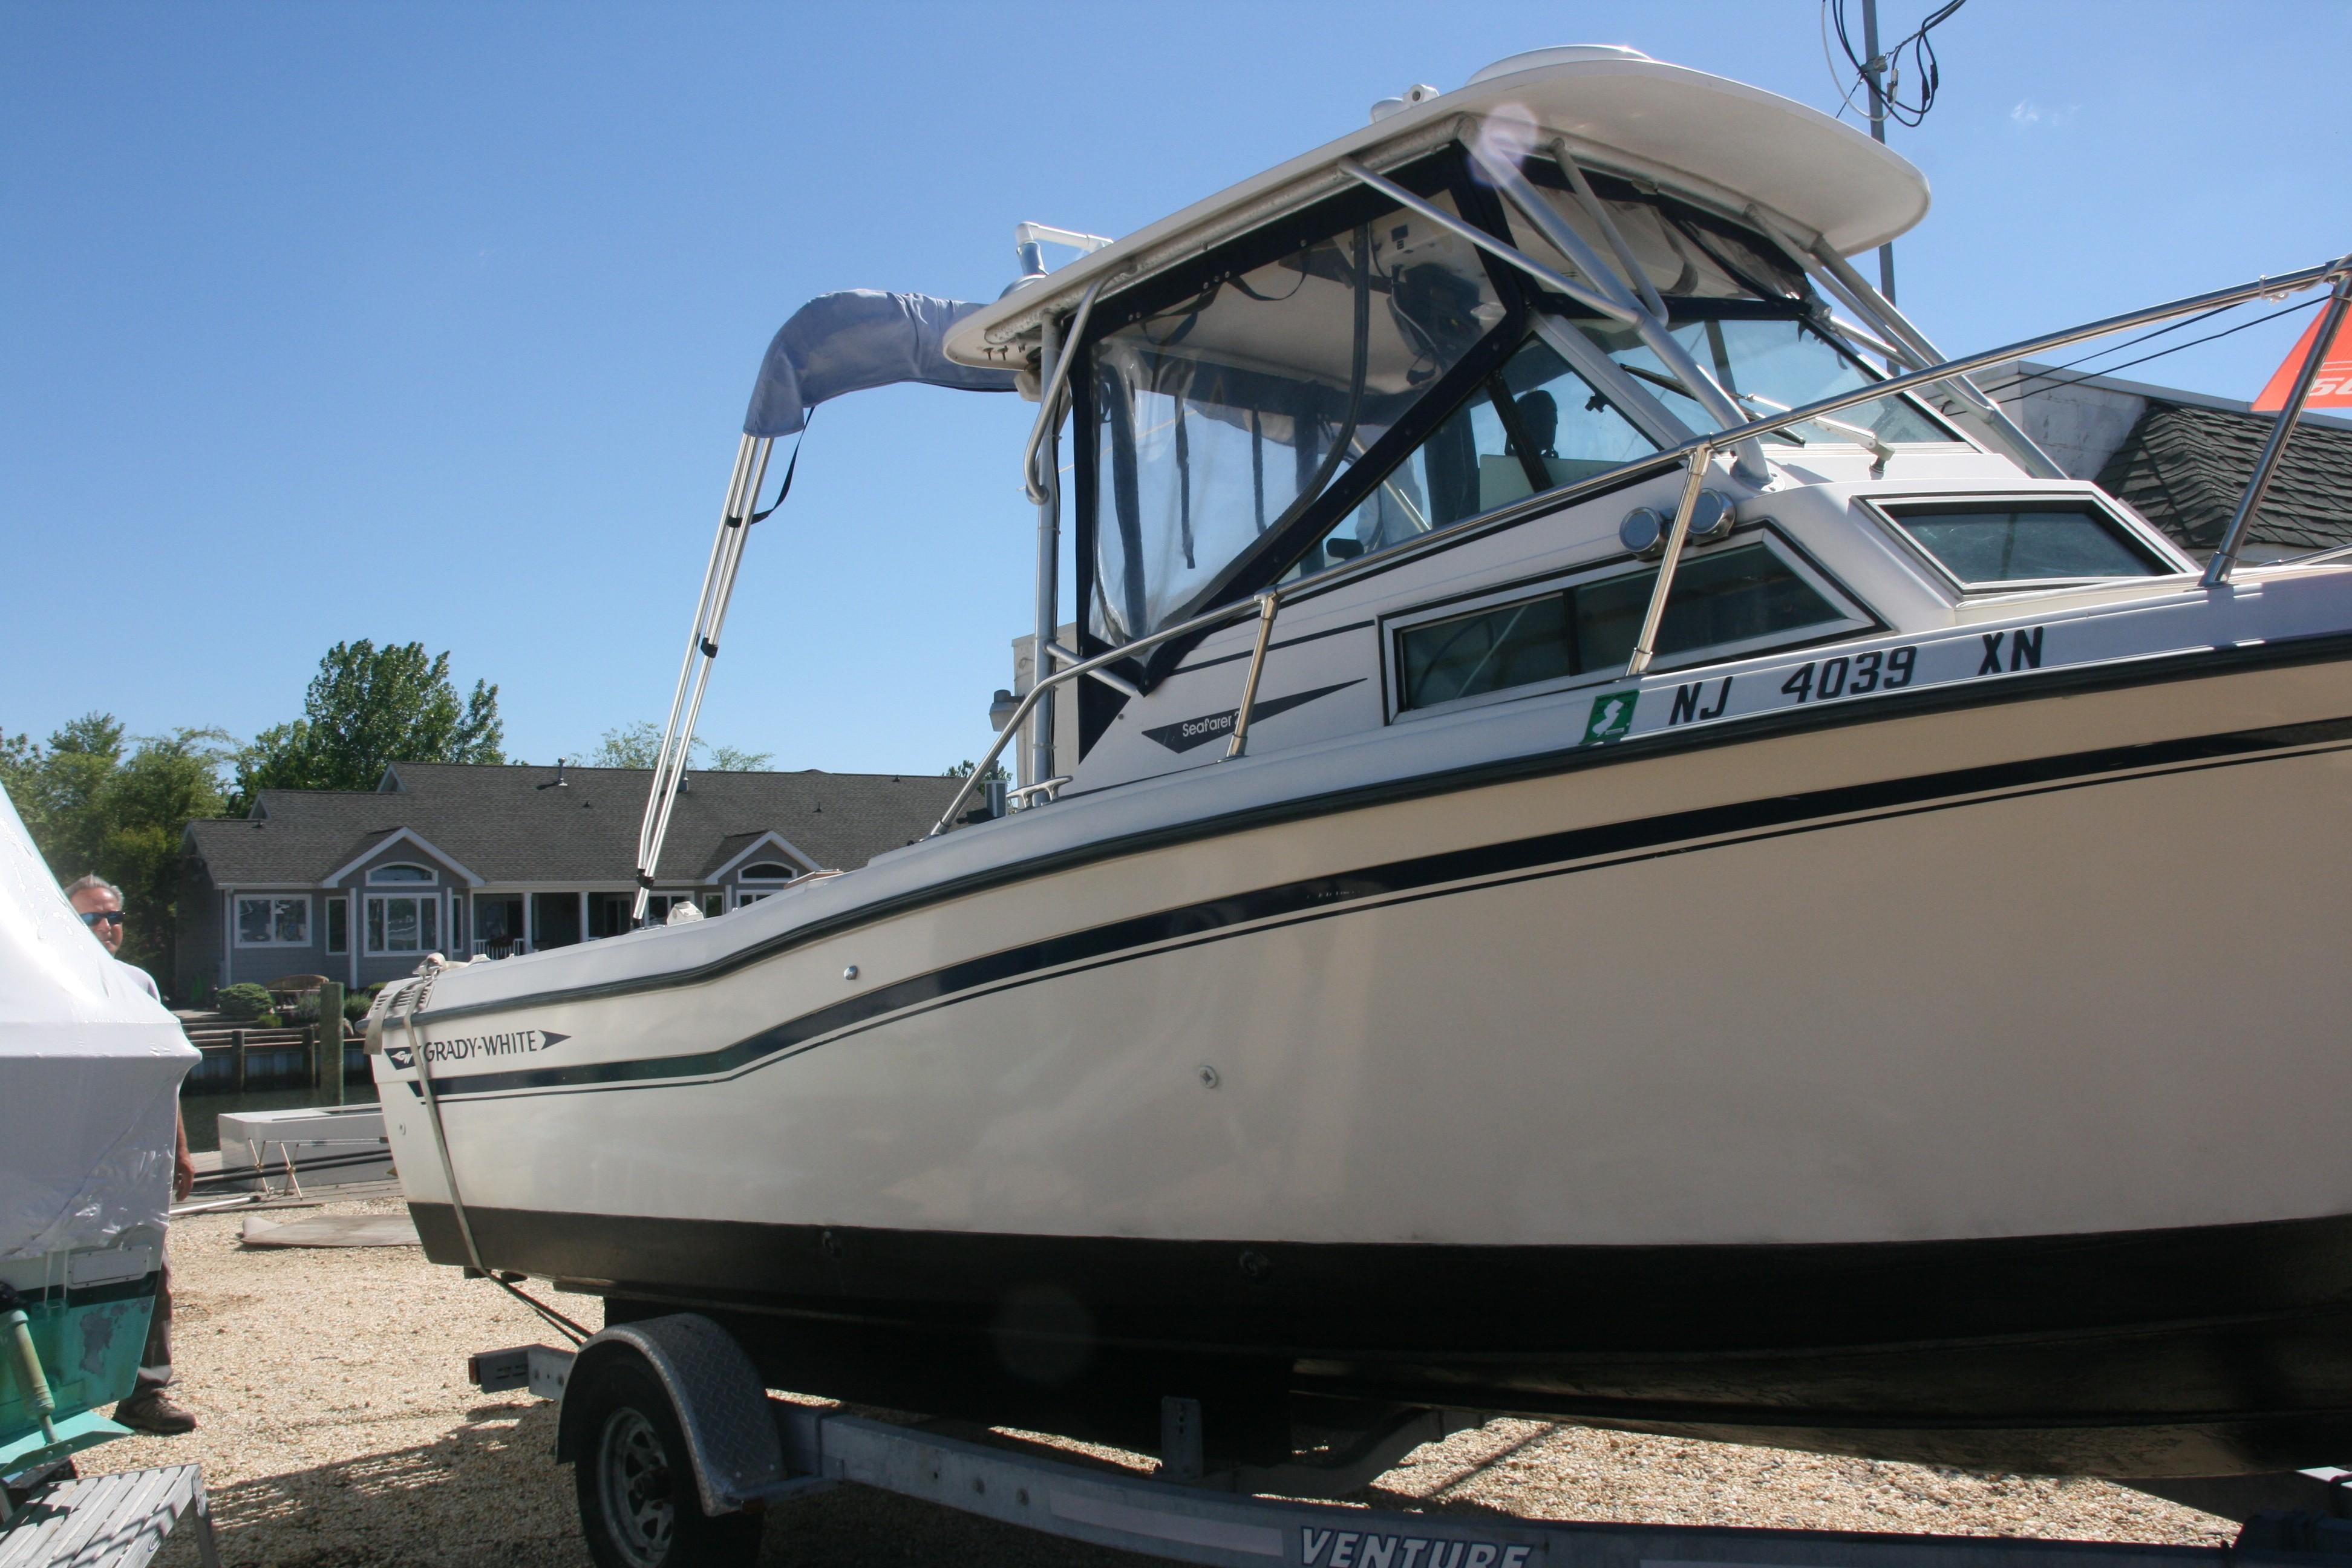 For sale by Rick Obey and Associates, Worldwide Yacht Search